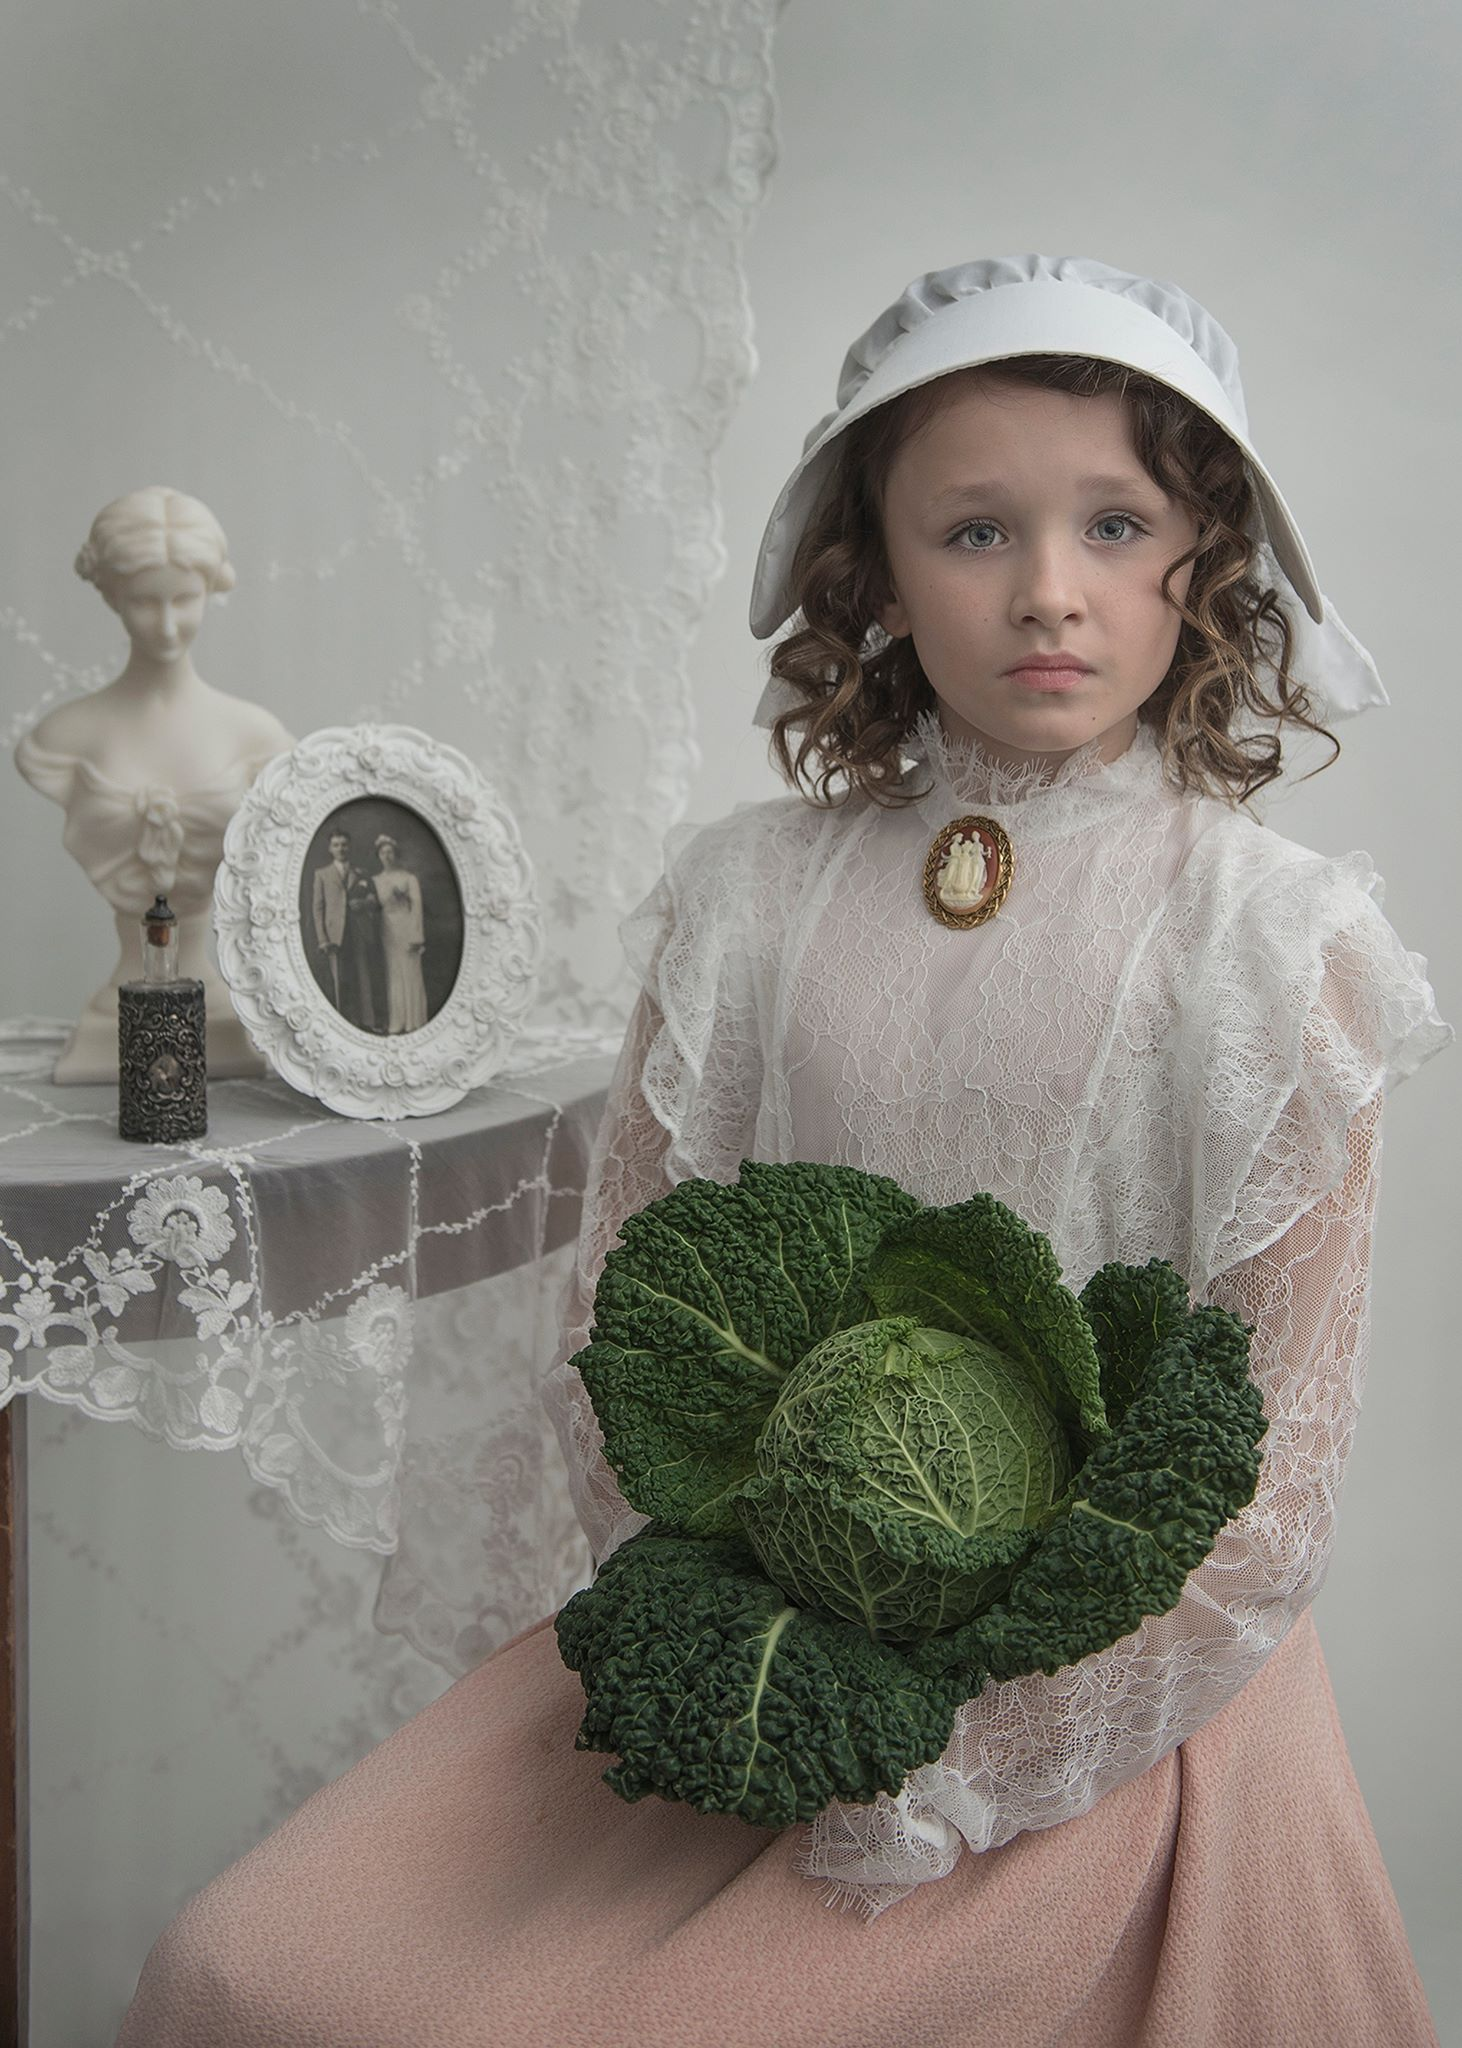 broccoli, Magdalena Walczak; mosthated, mosthatedvegetables, phoode; vegetables; kidsfood; foodphotography; foodstyling; foodprojects; healtyfood; foodadvertising, savoy cabbage